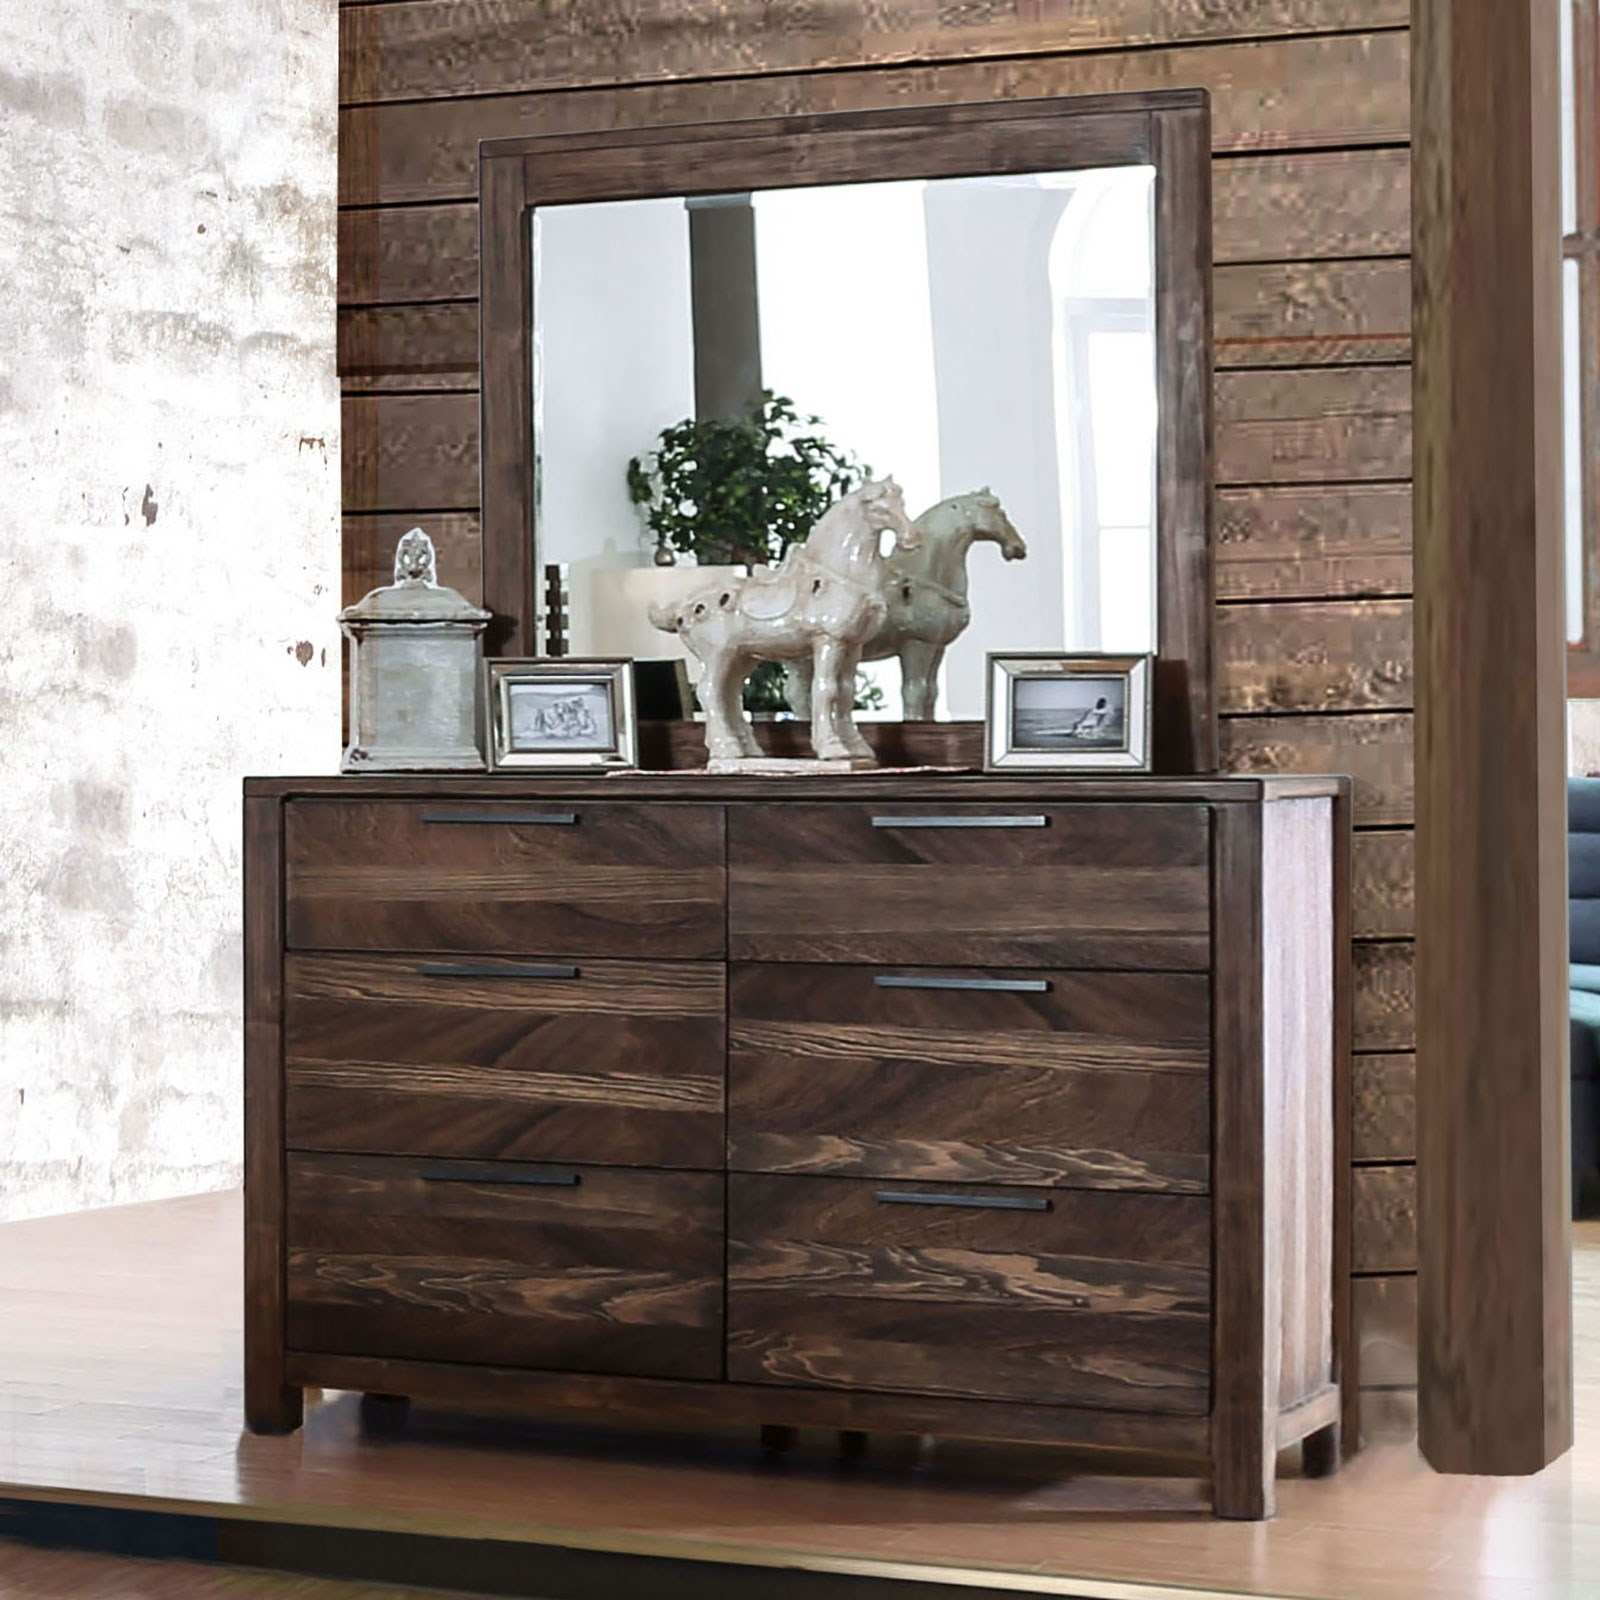 Hankinson Dresser and Mirror Combination at Household Furniture